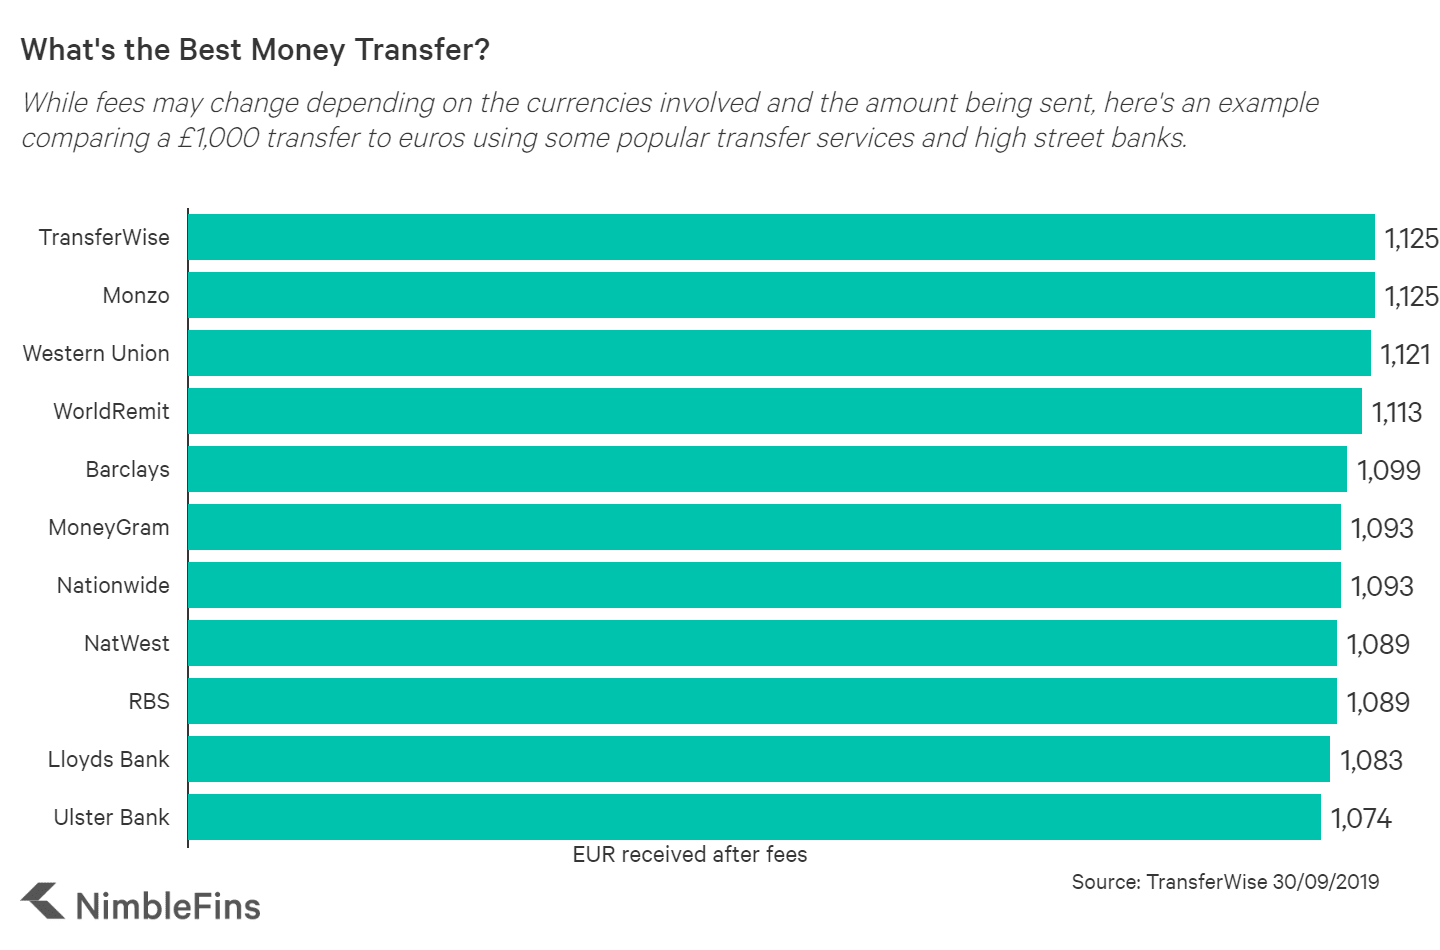 chart comparing costs of money transfers from GBP to EUR